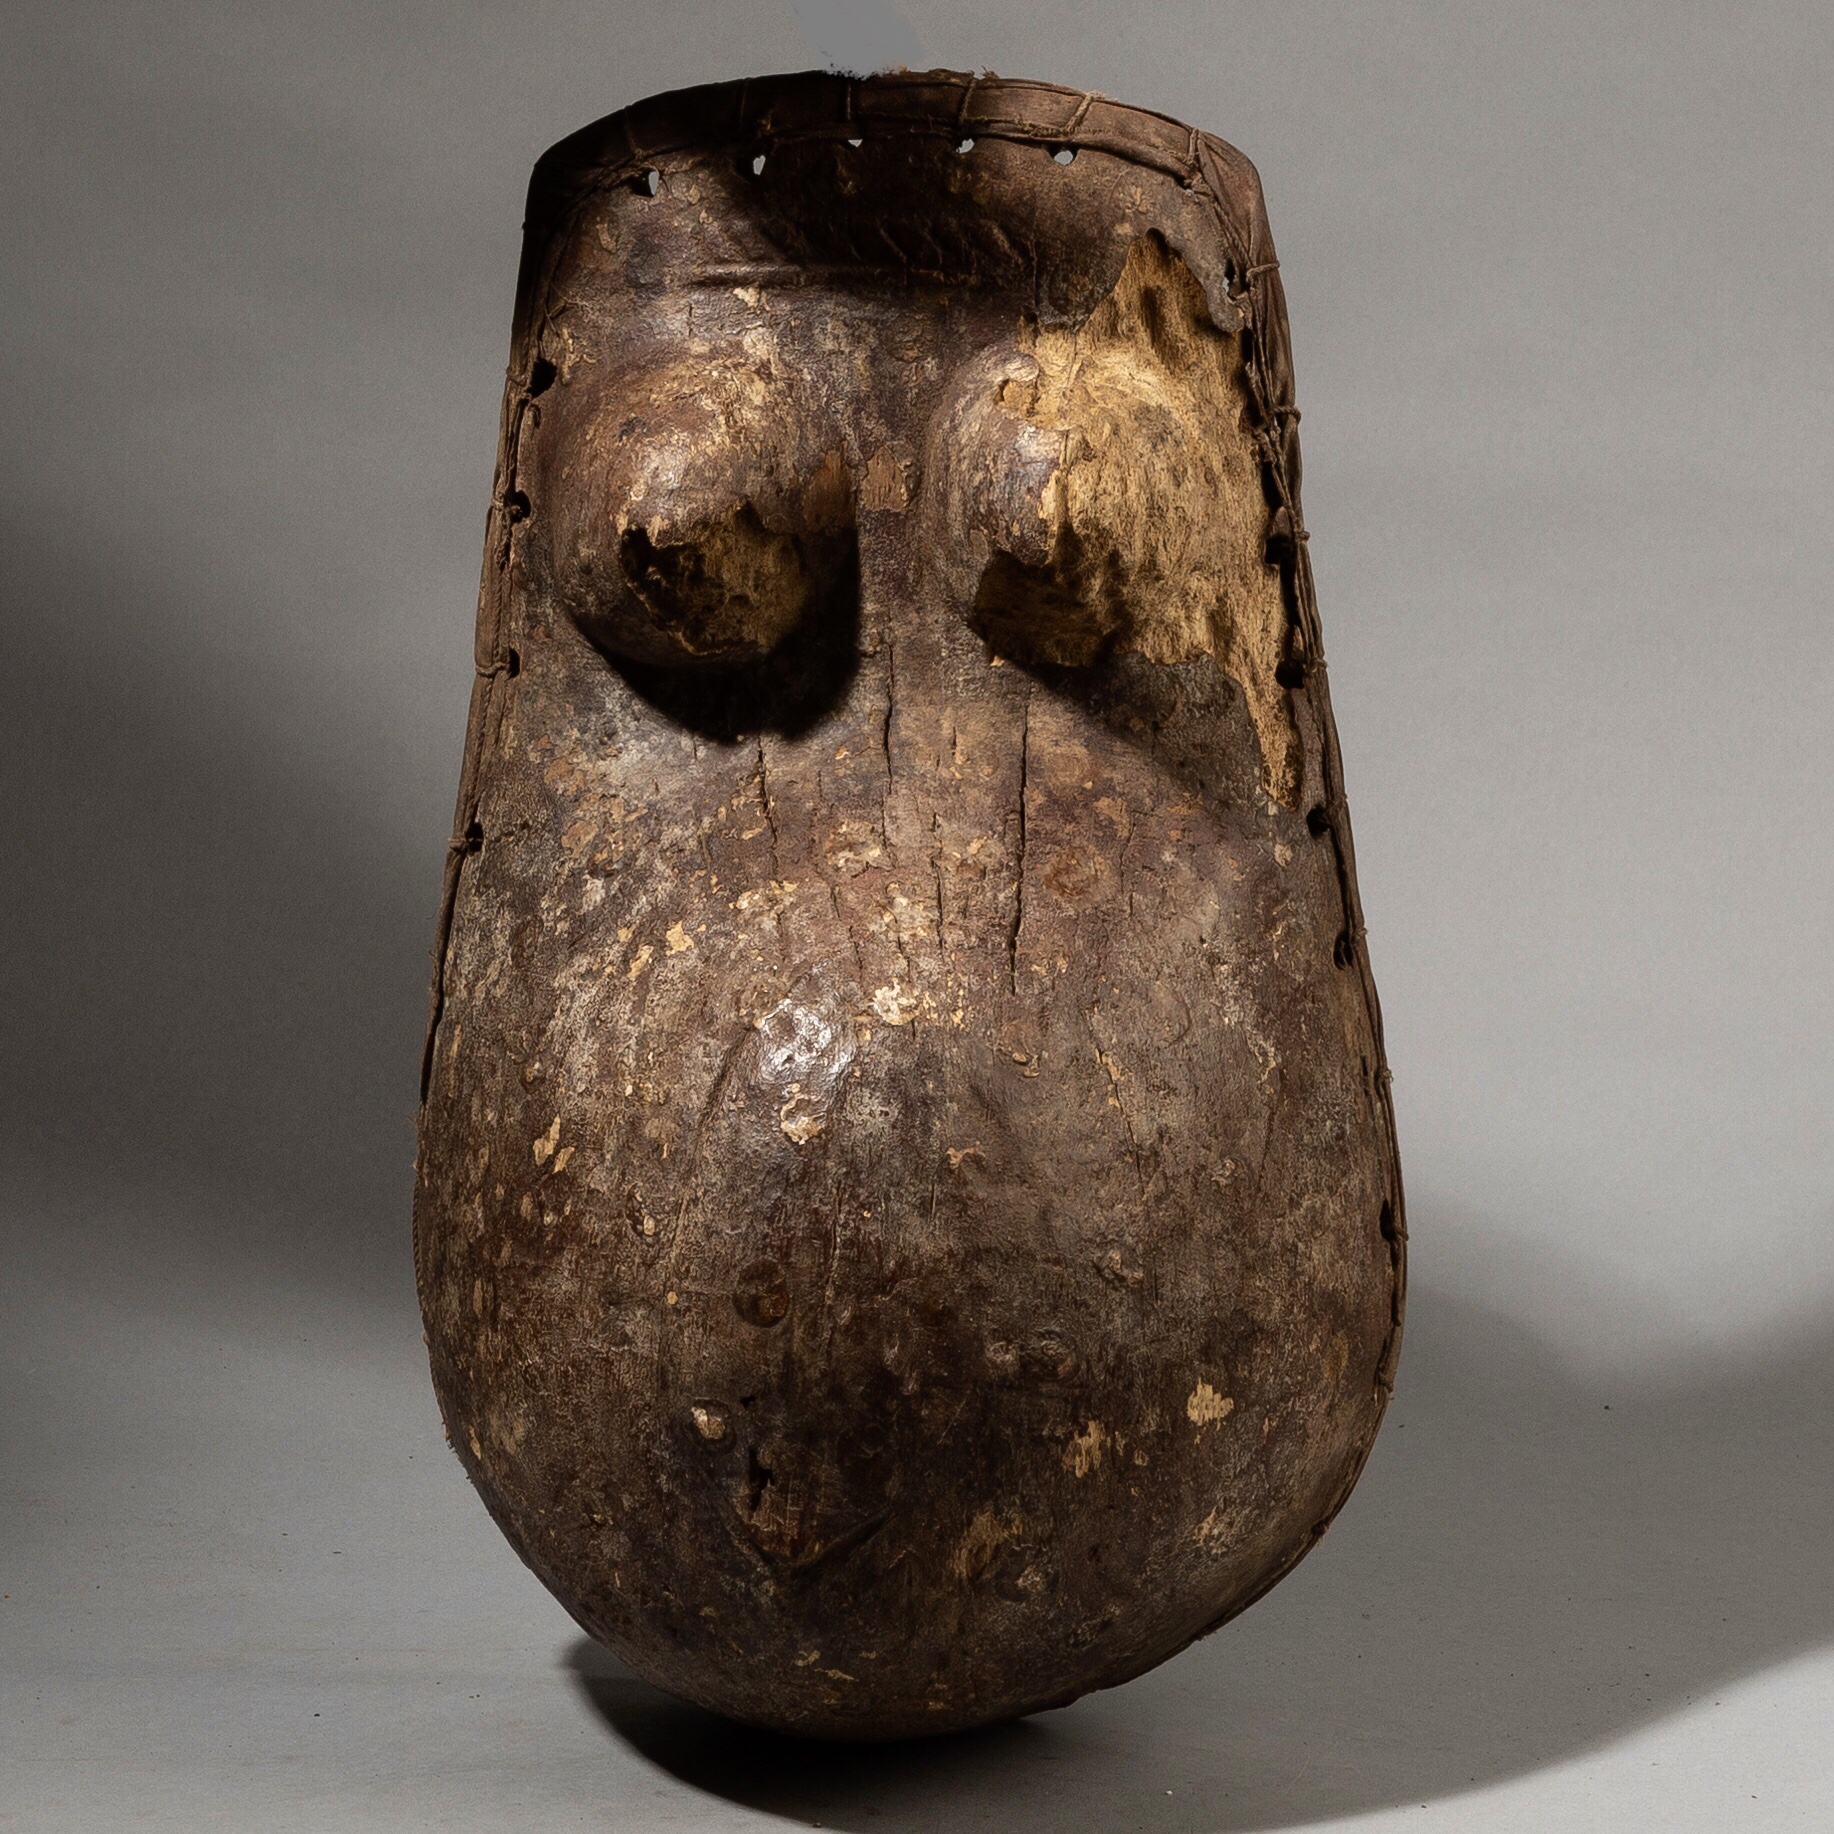 A CHARACTERFUL OLD BODY MASK, MAKONDE, MOZAMBIQUE ( No 3610 )